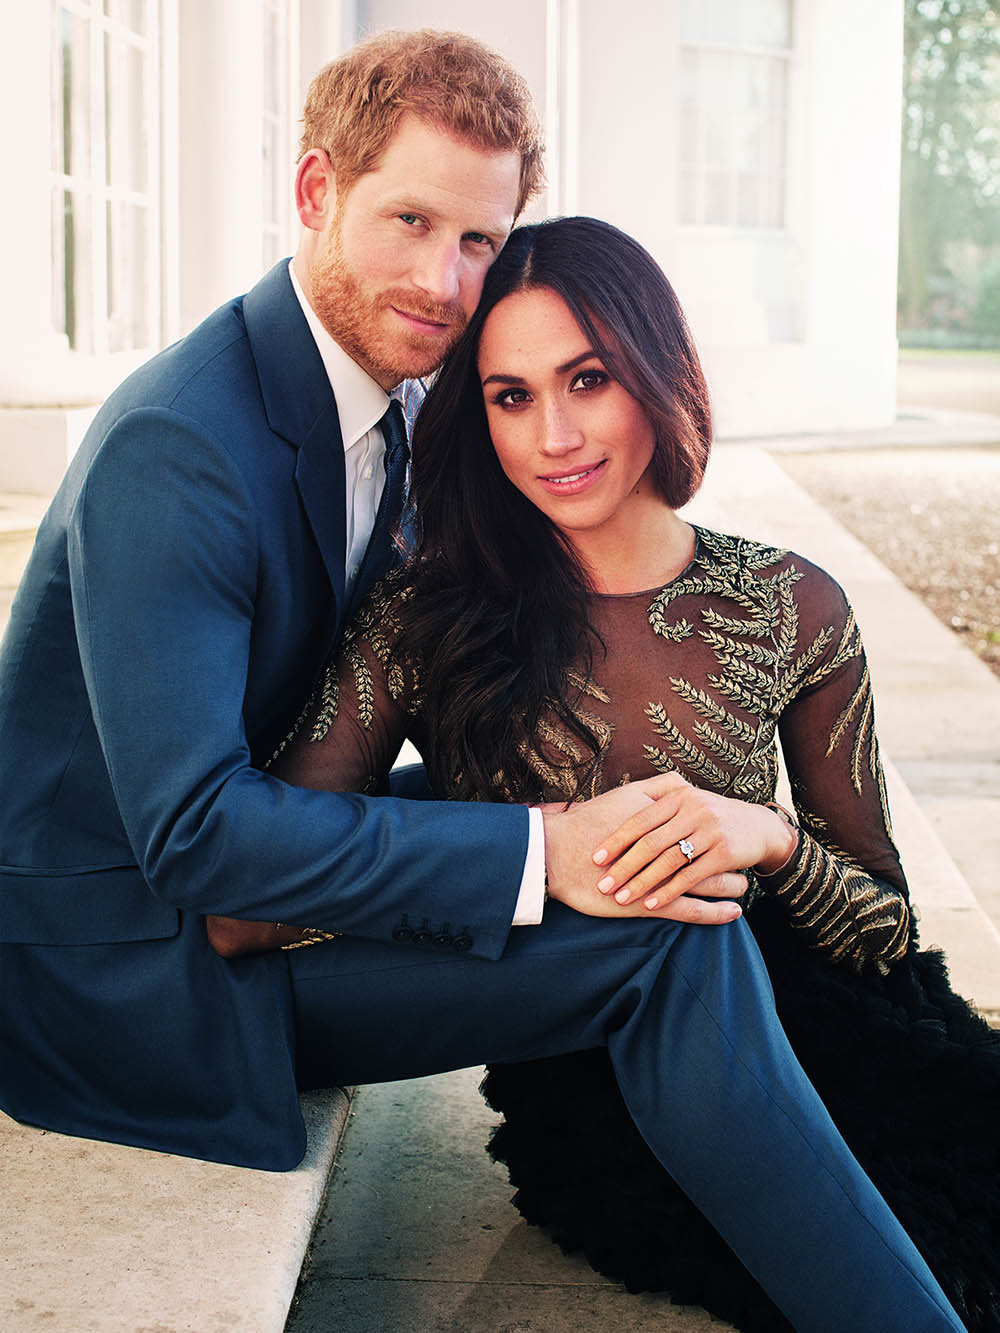 First Meghan Markle Engagement Photos Prince Harry Meghan Markle Engagement Photos Sandra Rose Meghan Markle Engagement Ring Meghan Markle Engagement Ring Diana Prince Harry wedding rings Meghan Markle Engagement Ring